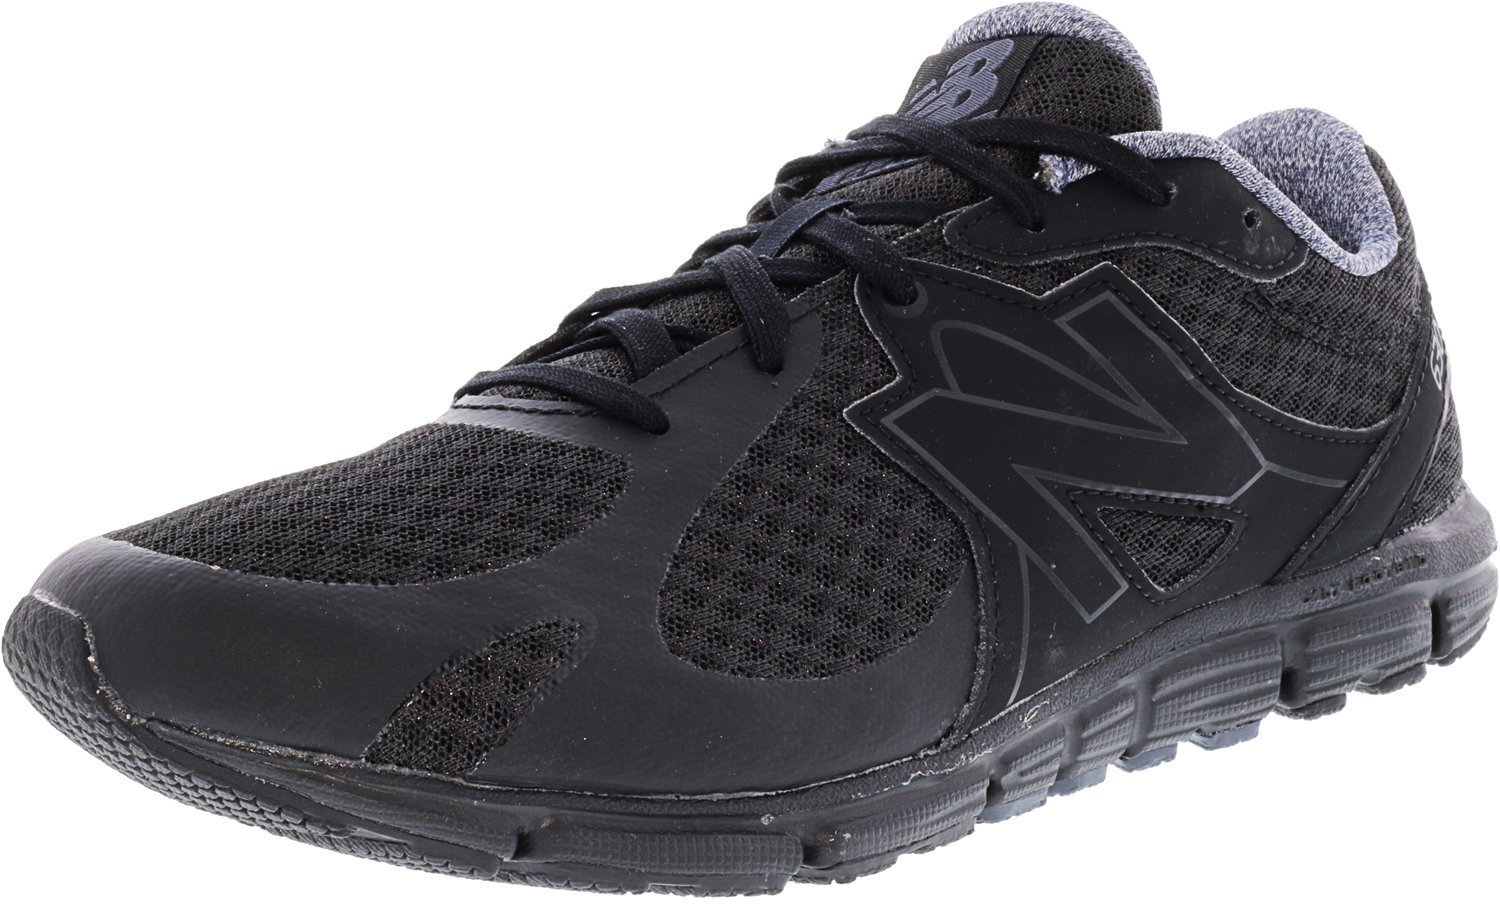 New Balance Women's 630v5 Flex Ride Running Shoe B01HGLHN6O 8.5 B(M) US|Black/Thunder